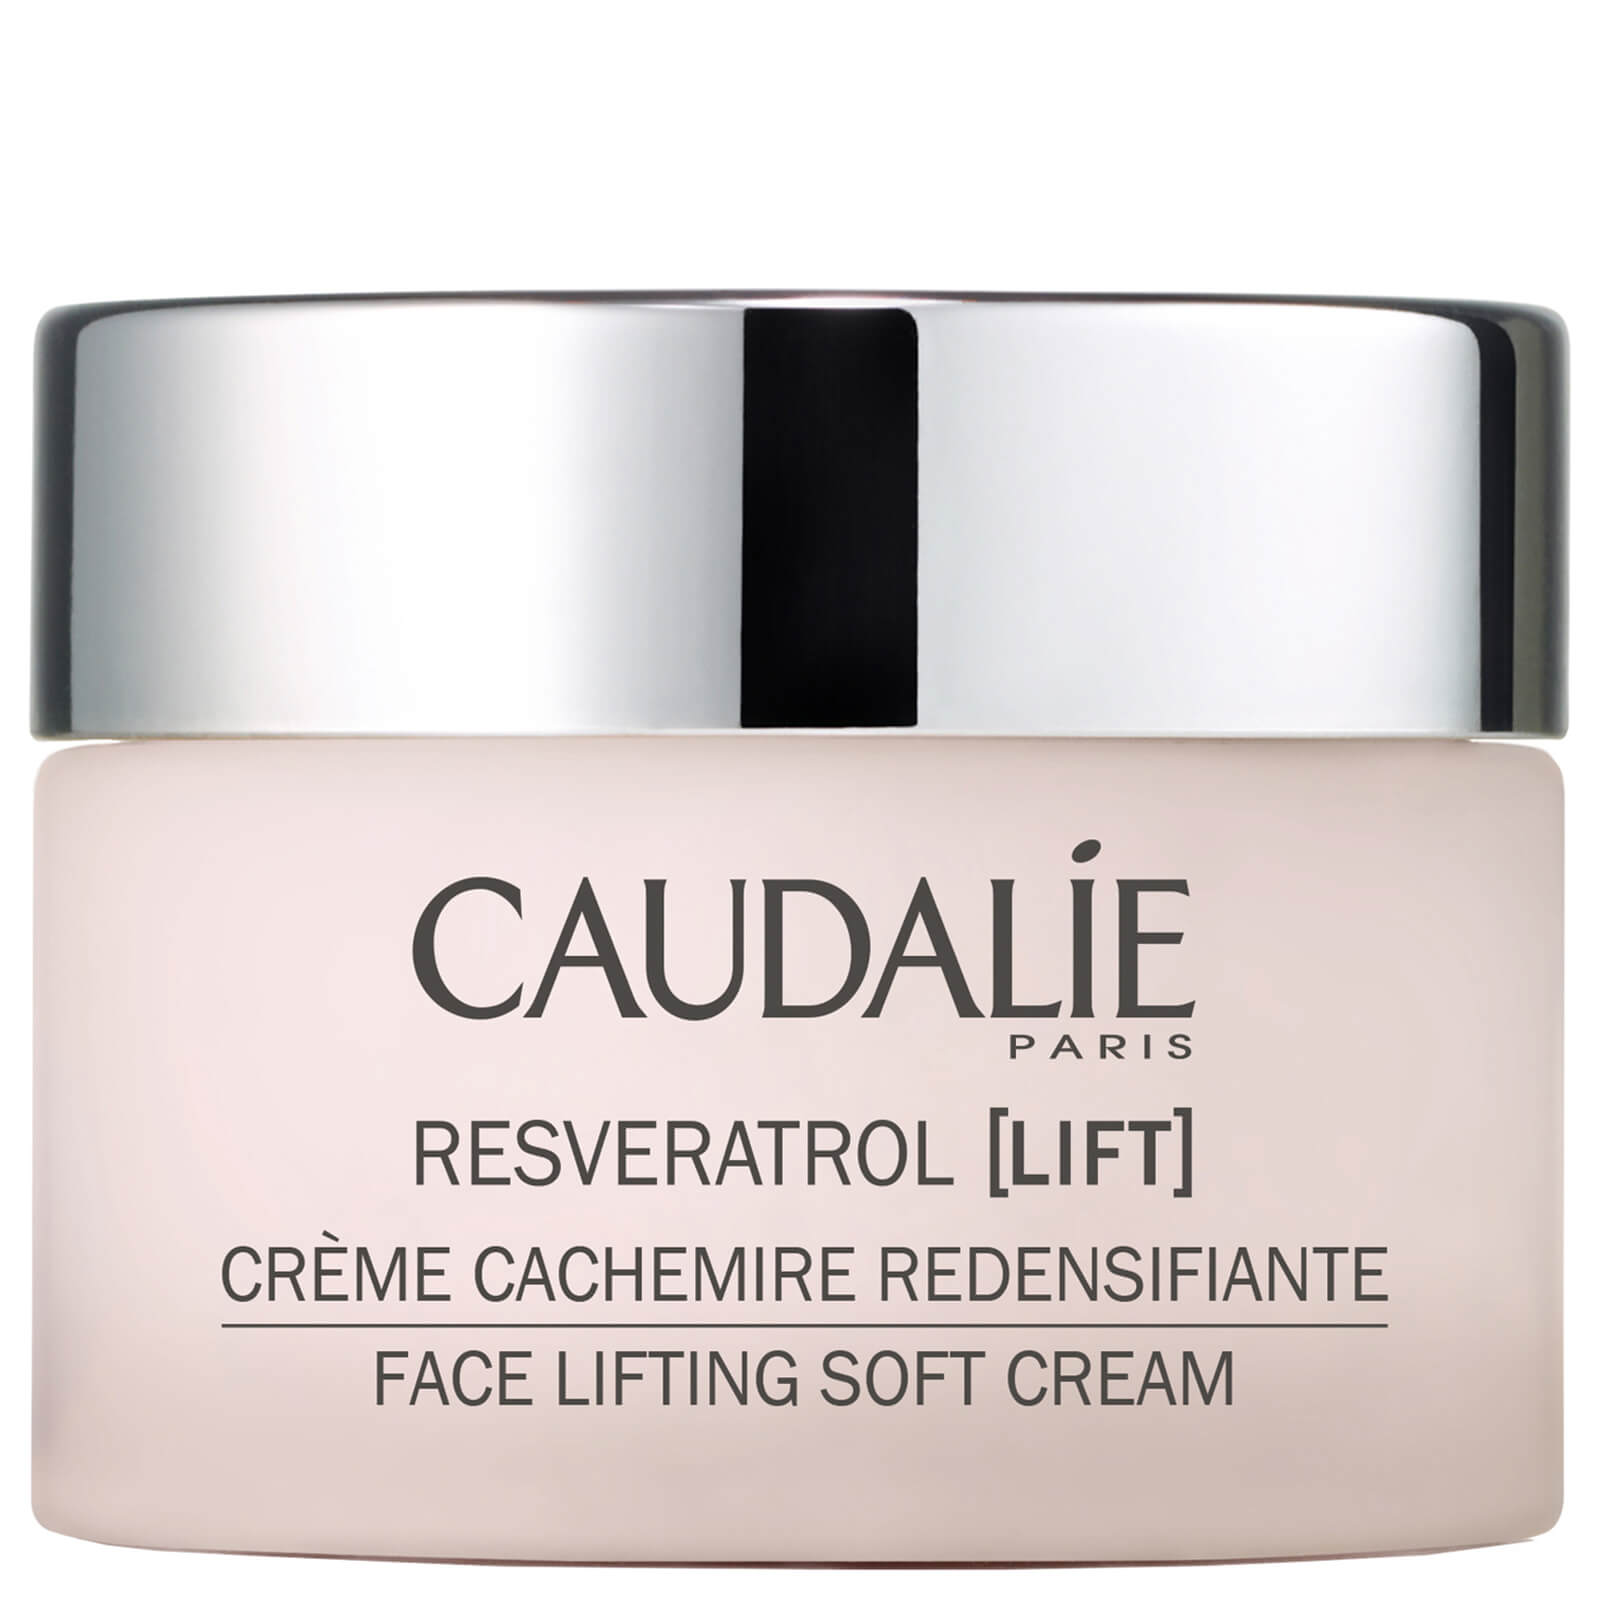 Caudalie Resveratrol Lift Face Lifting Soft Cream 25ml